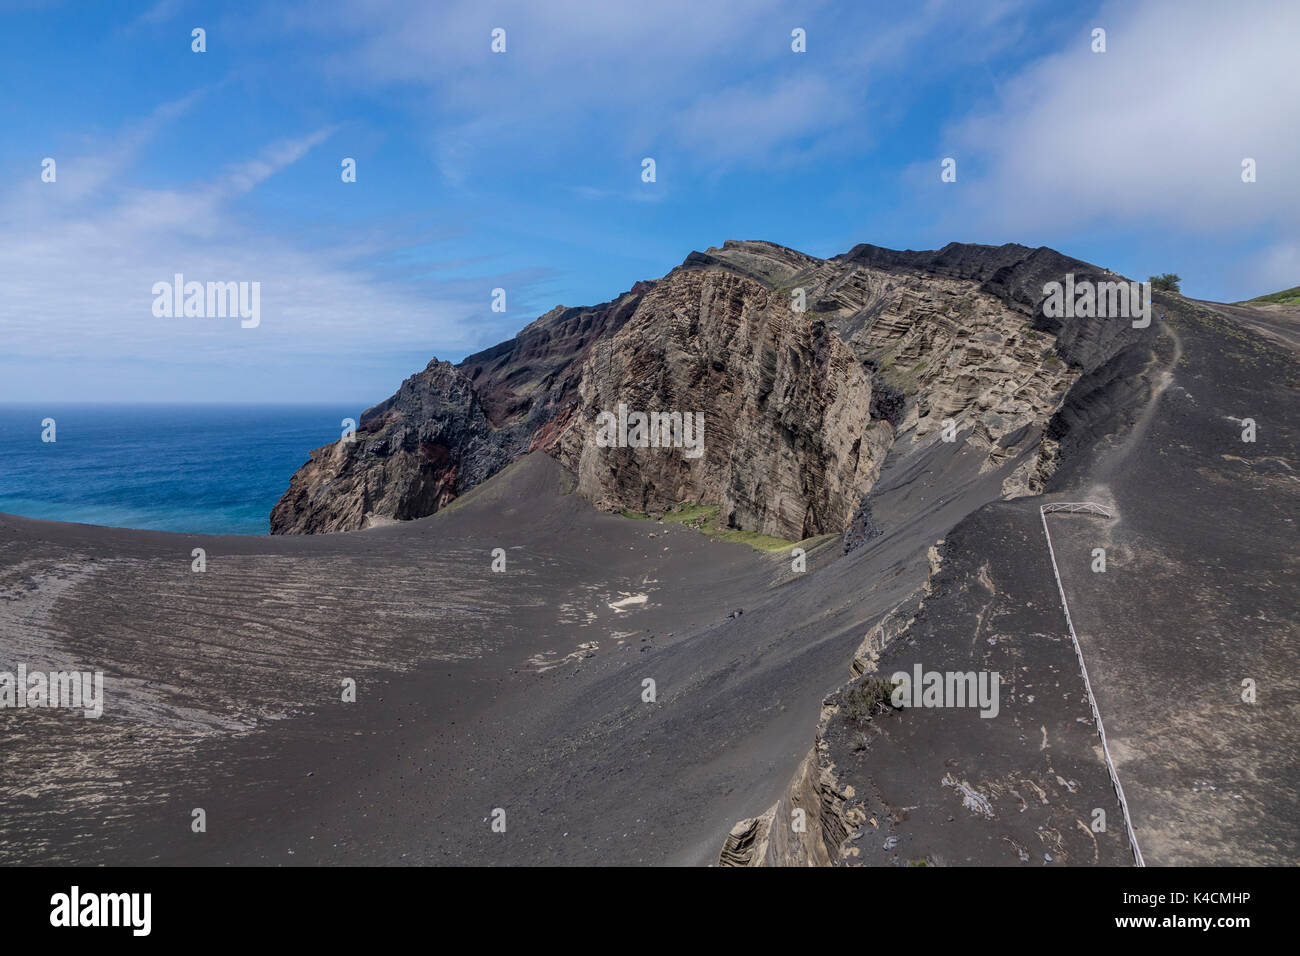 Desertic Land With Ridge, Mountain Of Ash And Volcanic Rocks At The Vulcao Dos Capelinhos On The West Tip Of Faial. Blue Sky White Clouds. Azores - Stock Image